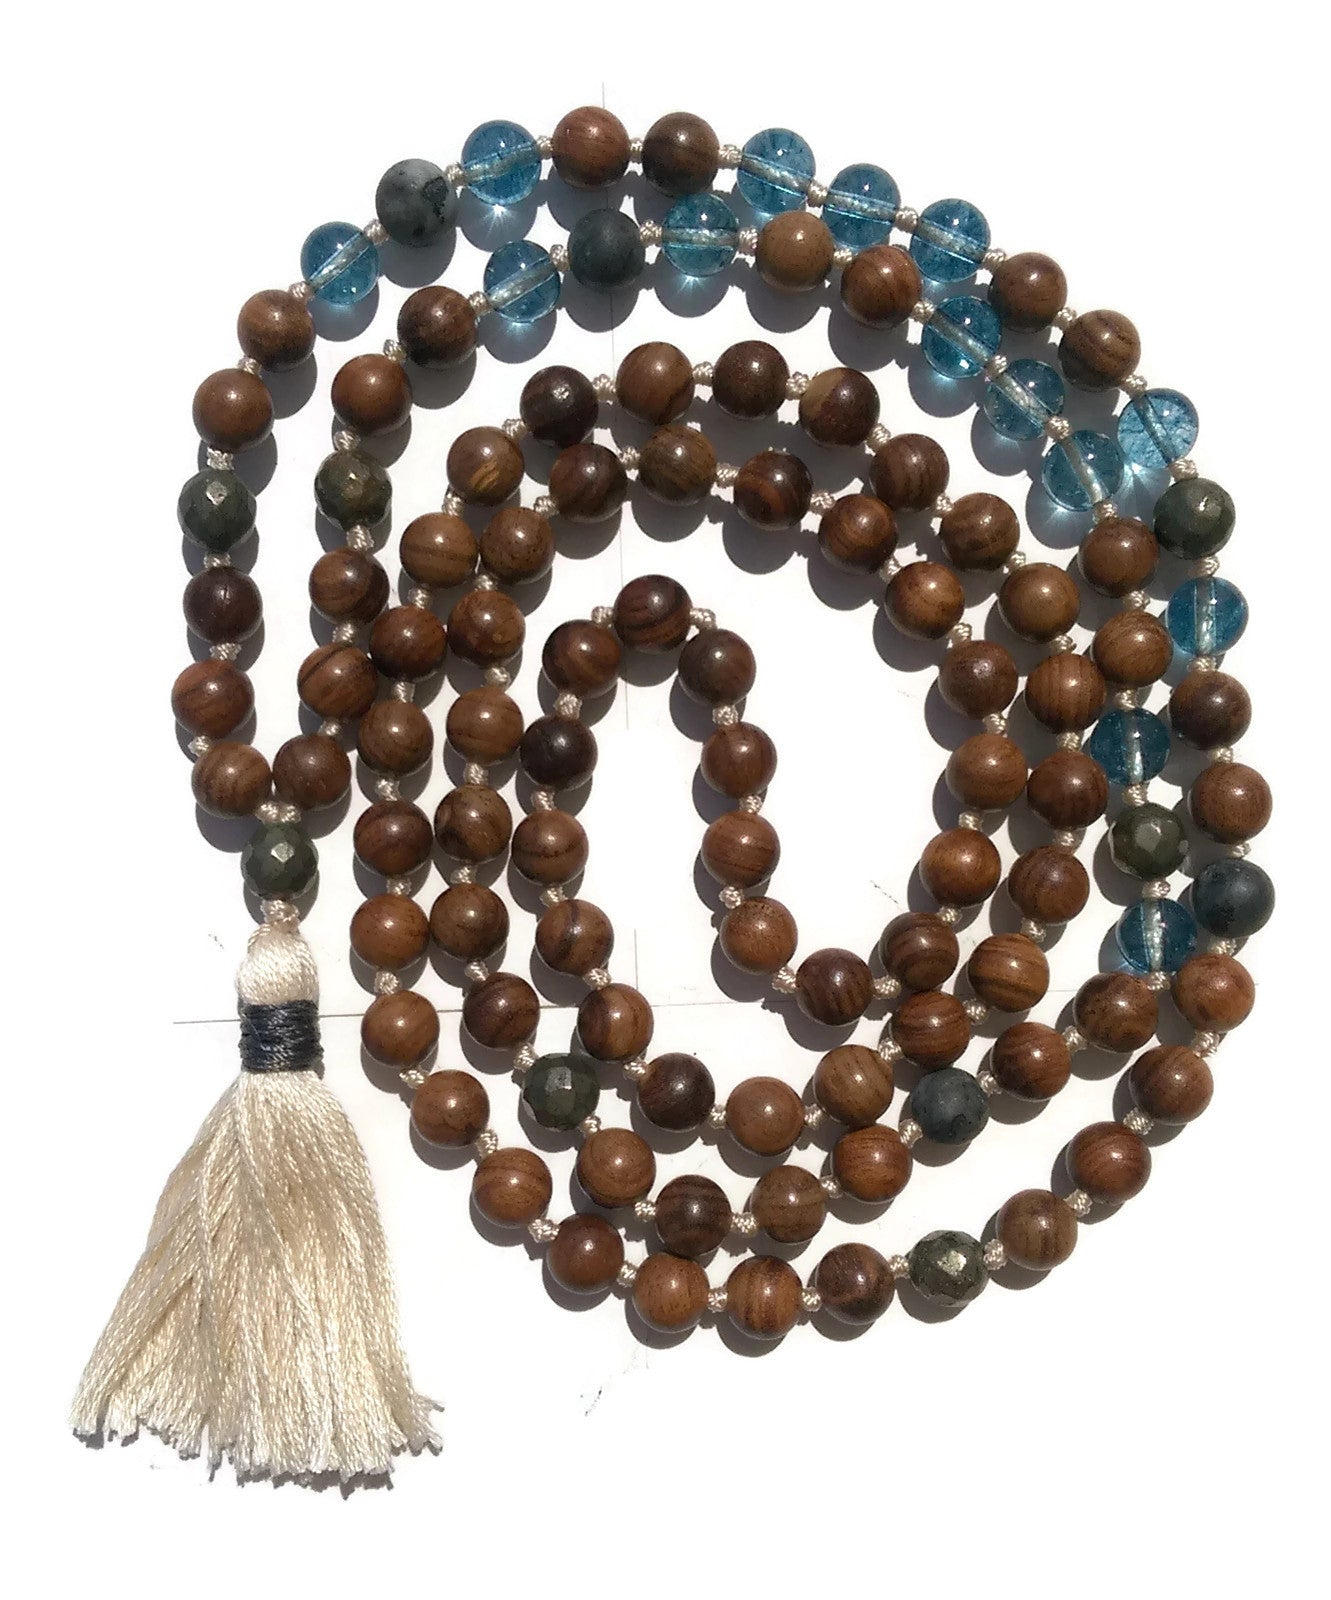 Pure Collection 8mm Pear Wood Phantom Crystal Labradorite Pyrite Traditional Hand Knotted 108 Bead Meditation Mala Necklace Throat Chakra